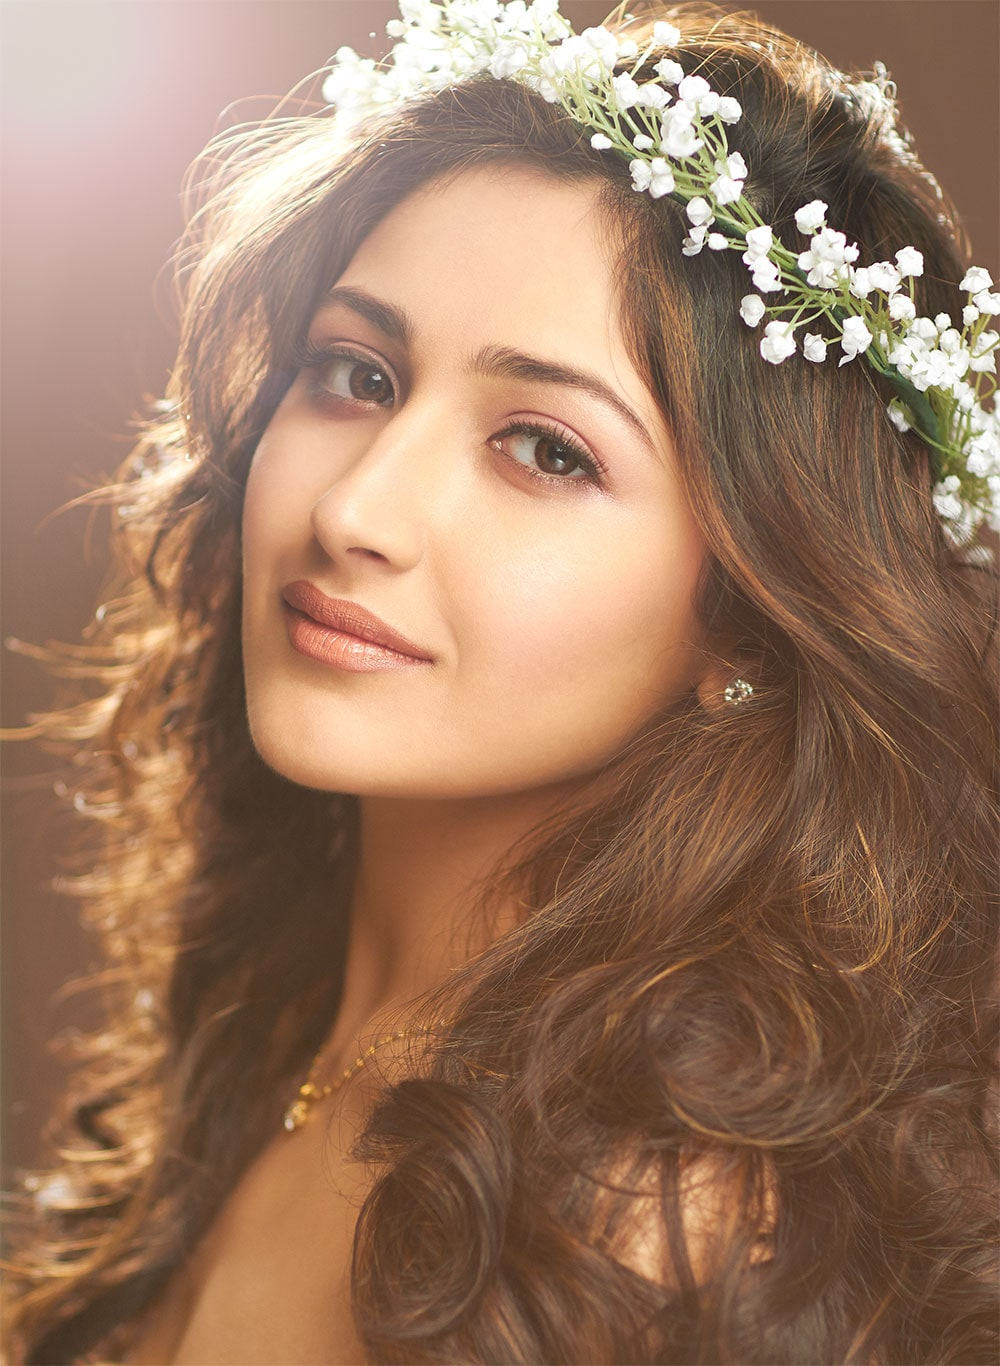 Discussion on this topic: Ginger Stanley, sayyeshaa-saigal/